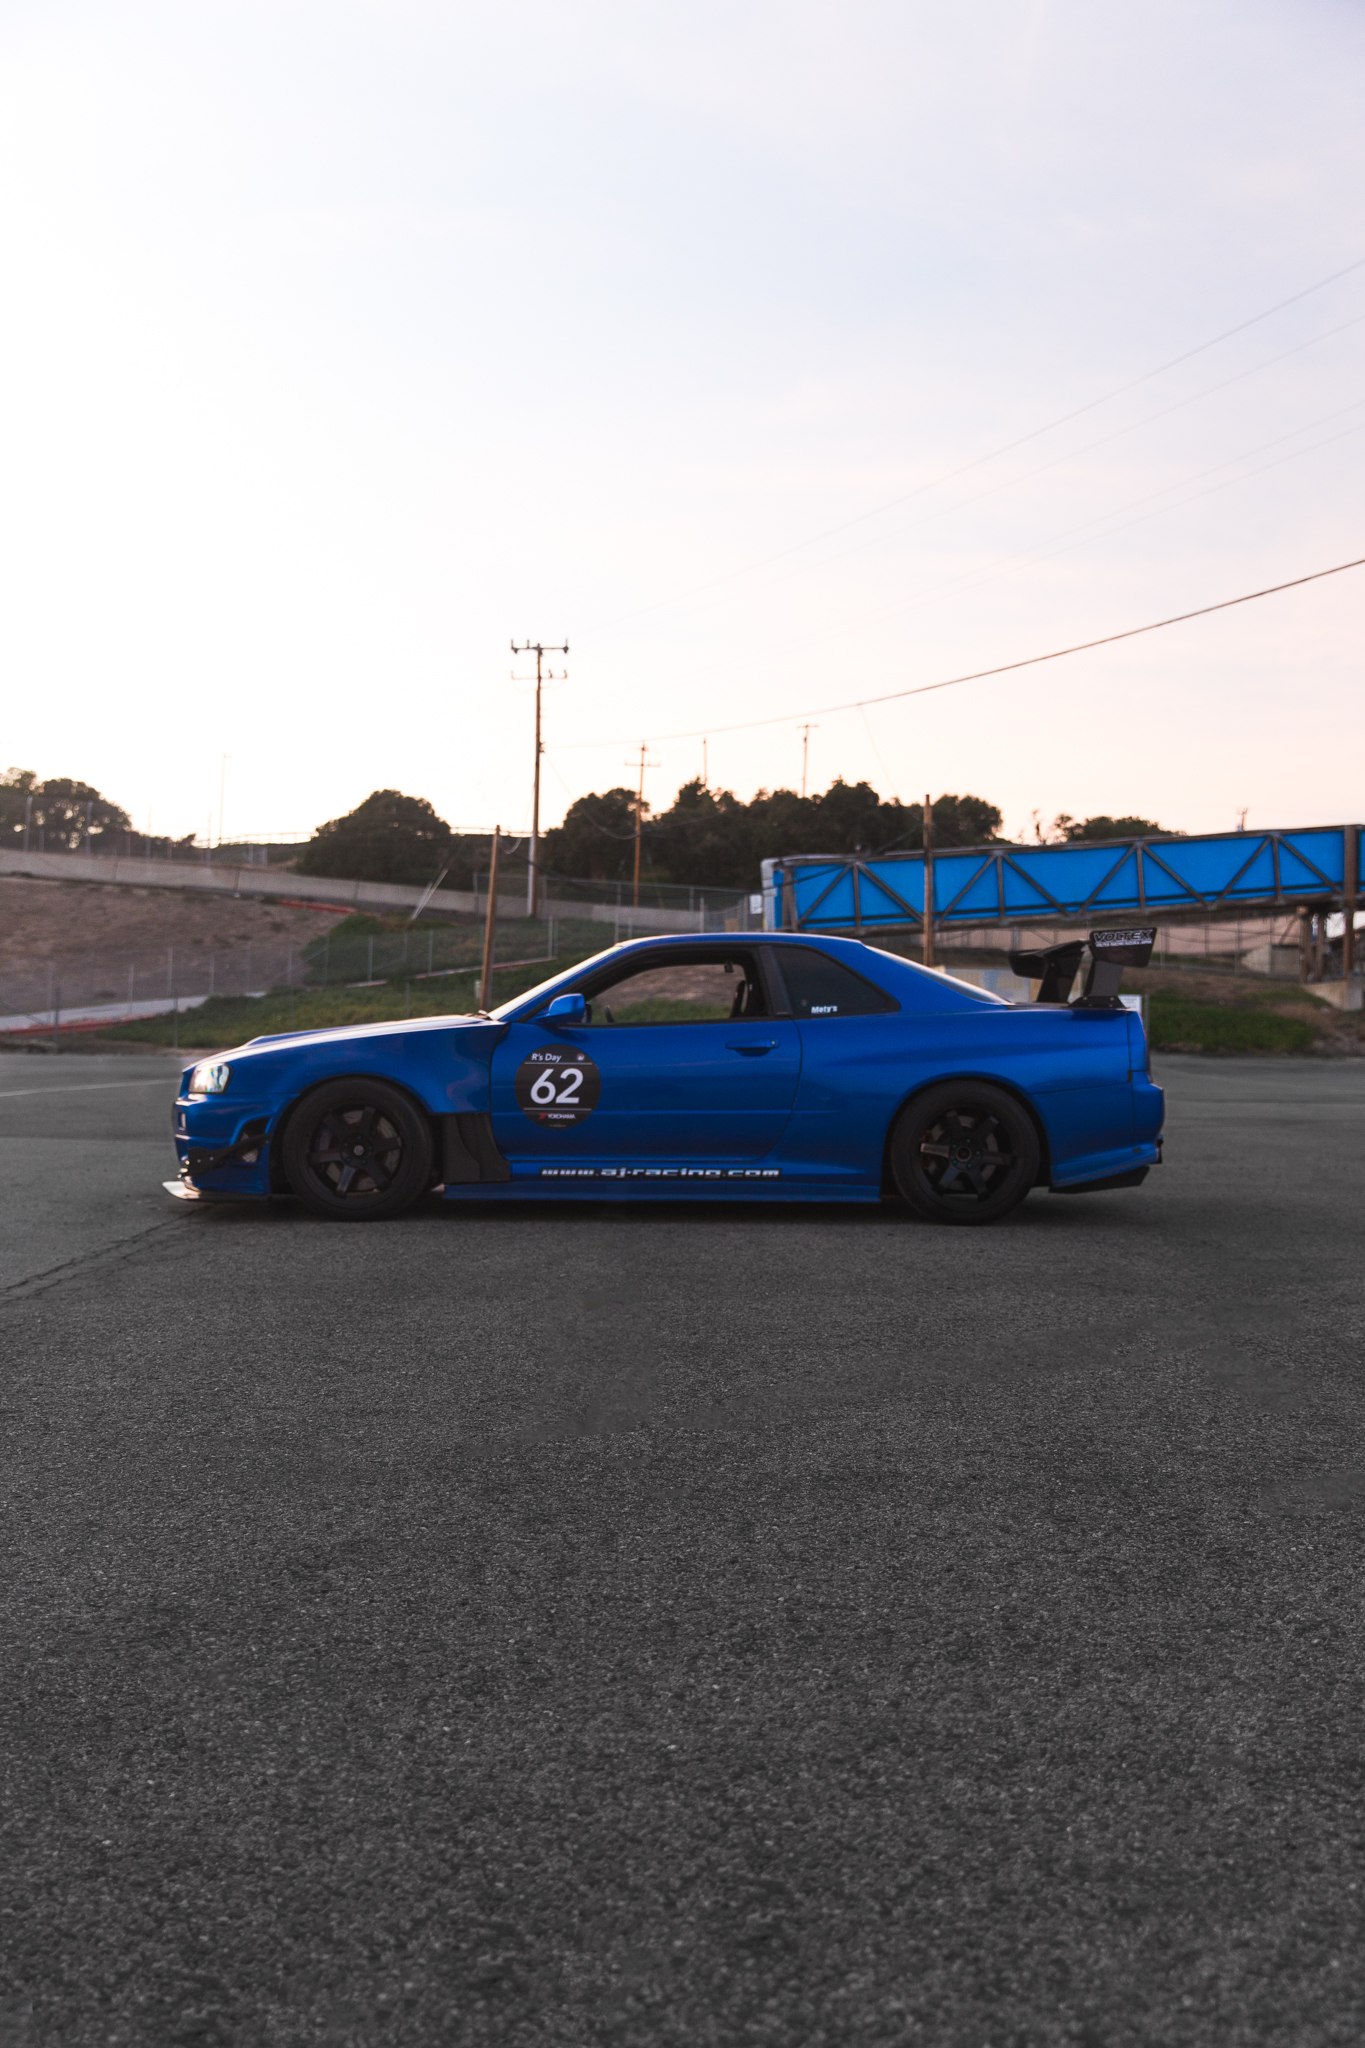 Stay_Driven_Rs_Day-154.jpg